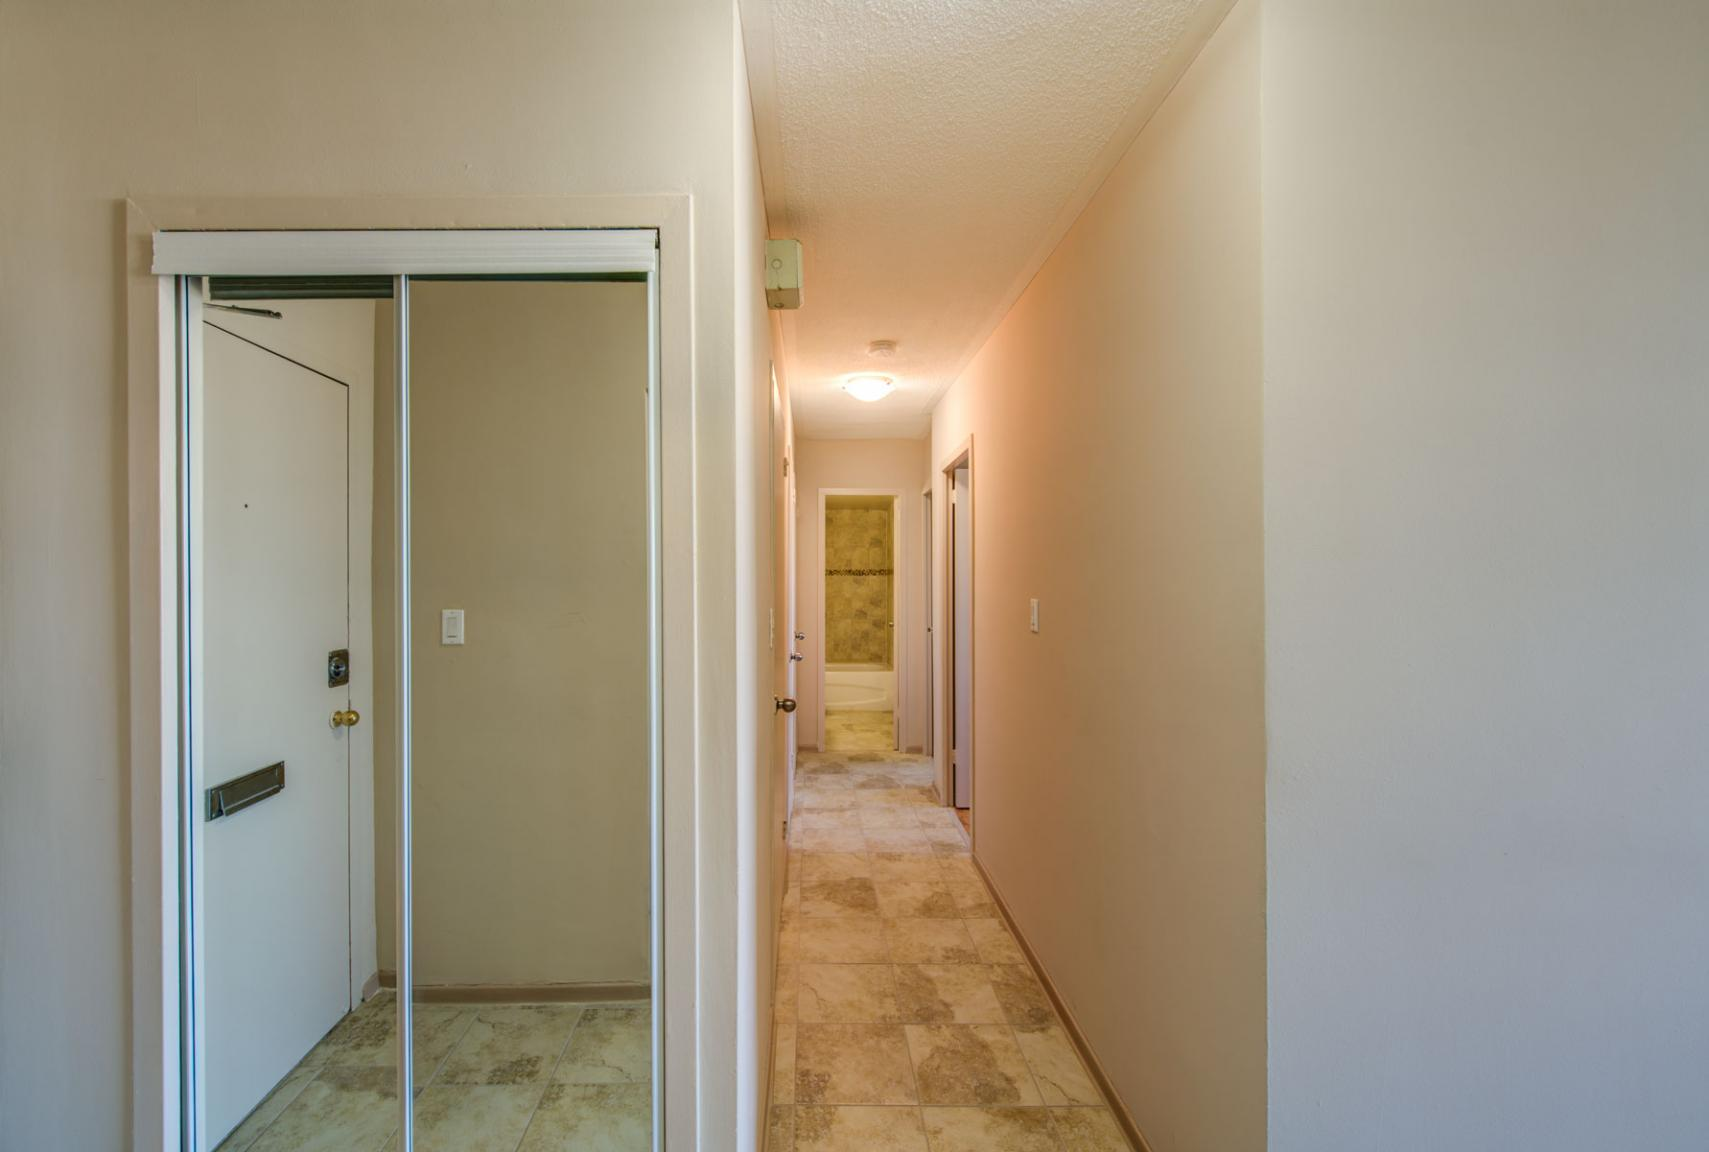 1 bedroom Apartments for rent in North-York at Hunters Lodge - Photo 39 - RentersPages – L400651